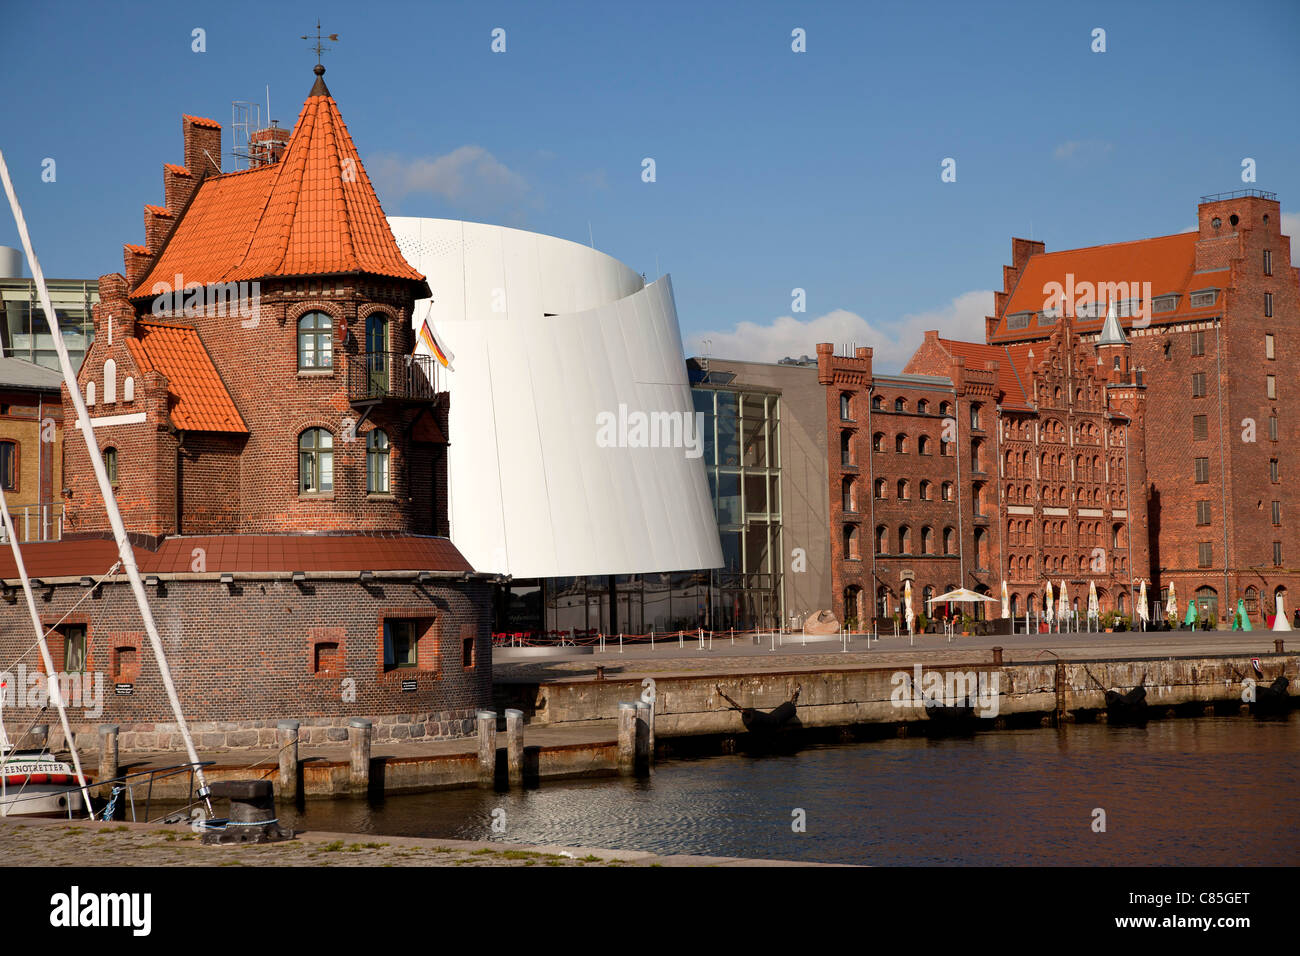 building of the Maritime pilots and Ozeaneum at the harbour of the Hanseatic City of Stralsund, Mecklenburg-Vorpommern, - Stock Image